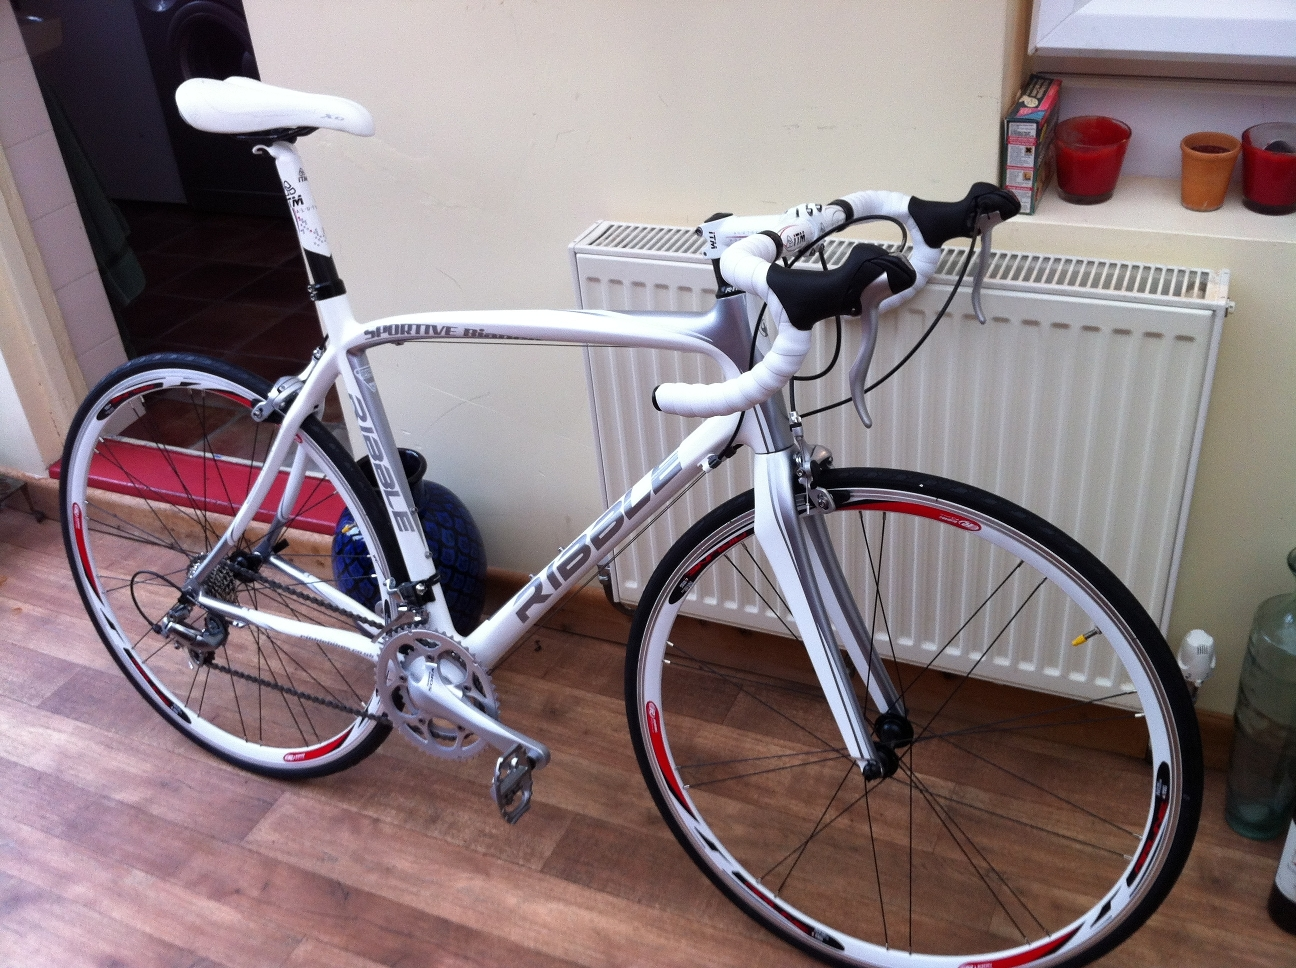 The bike is a white Ribble Sportive adult road racing bike, with a white saddle and white rims to the wheel.